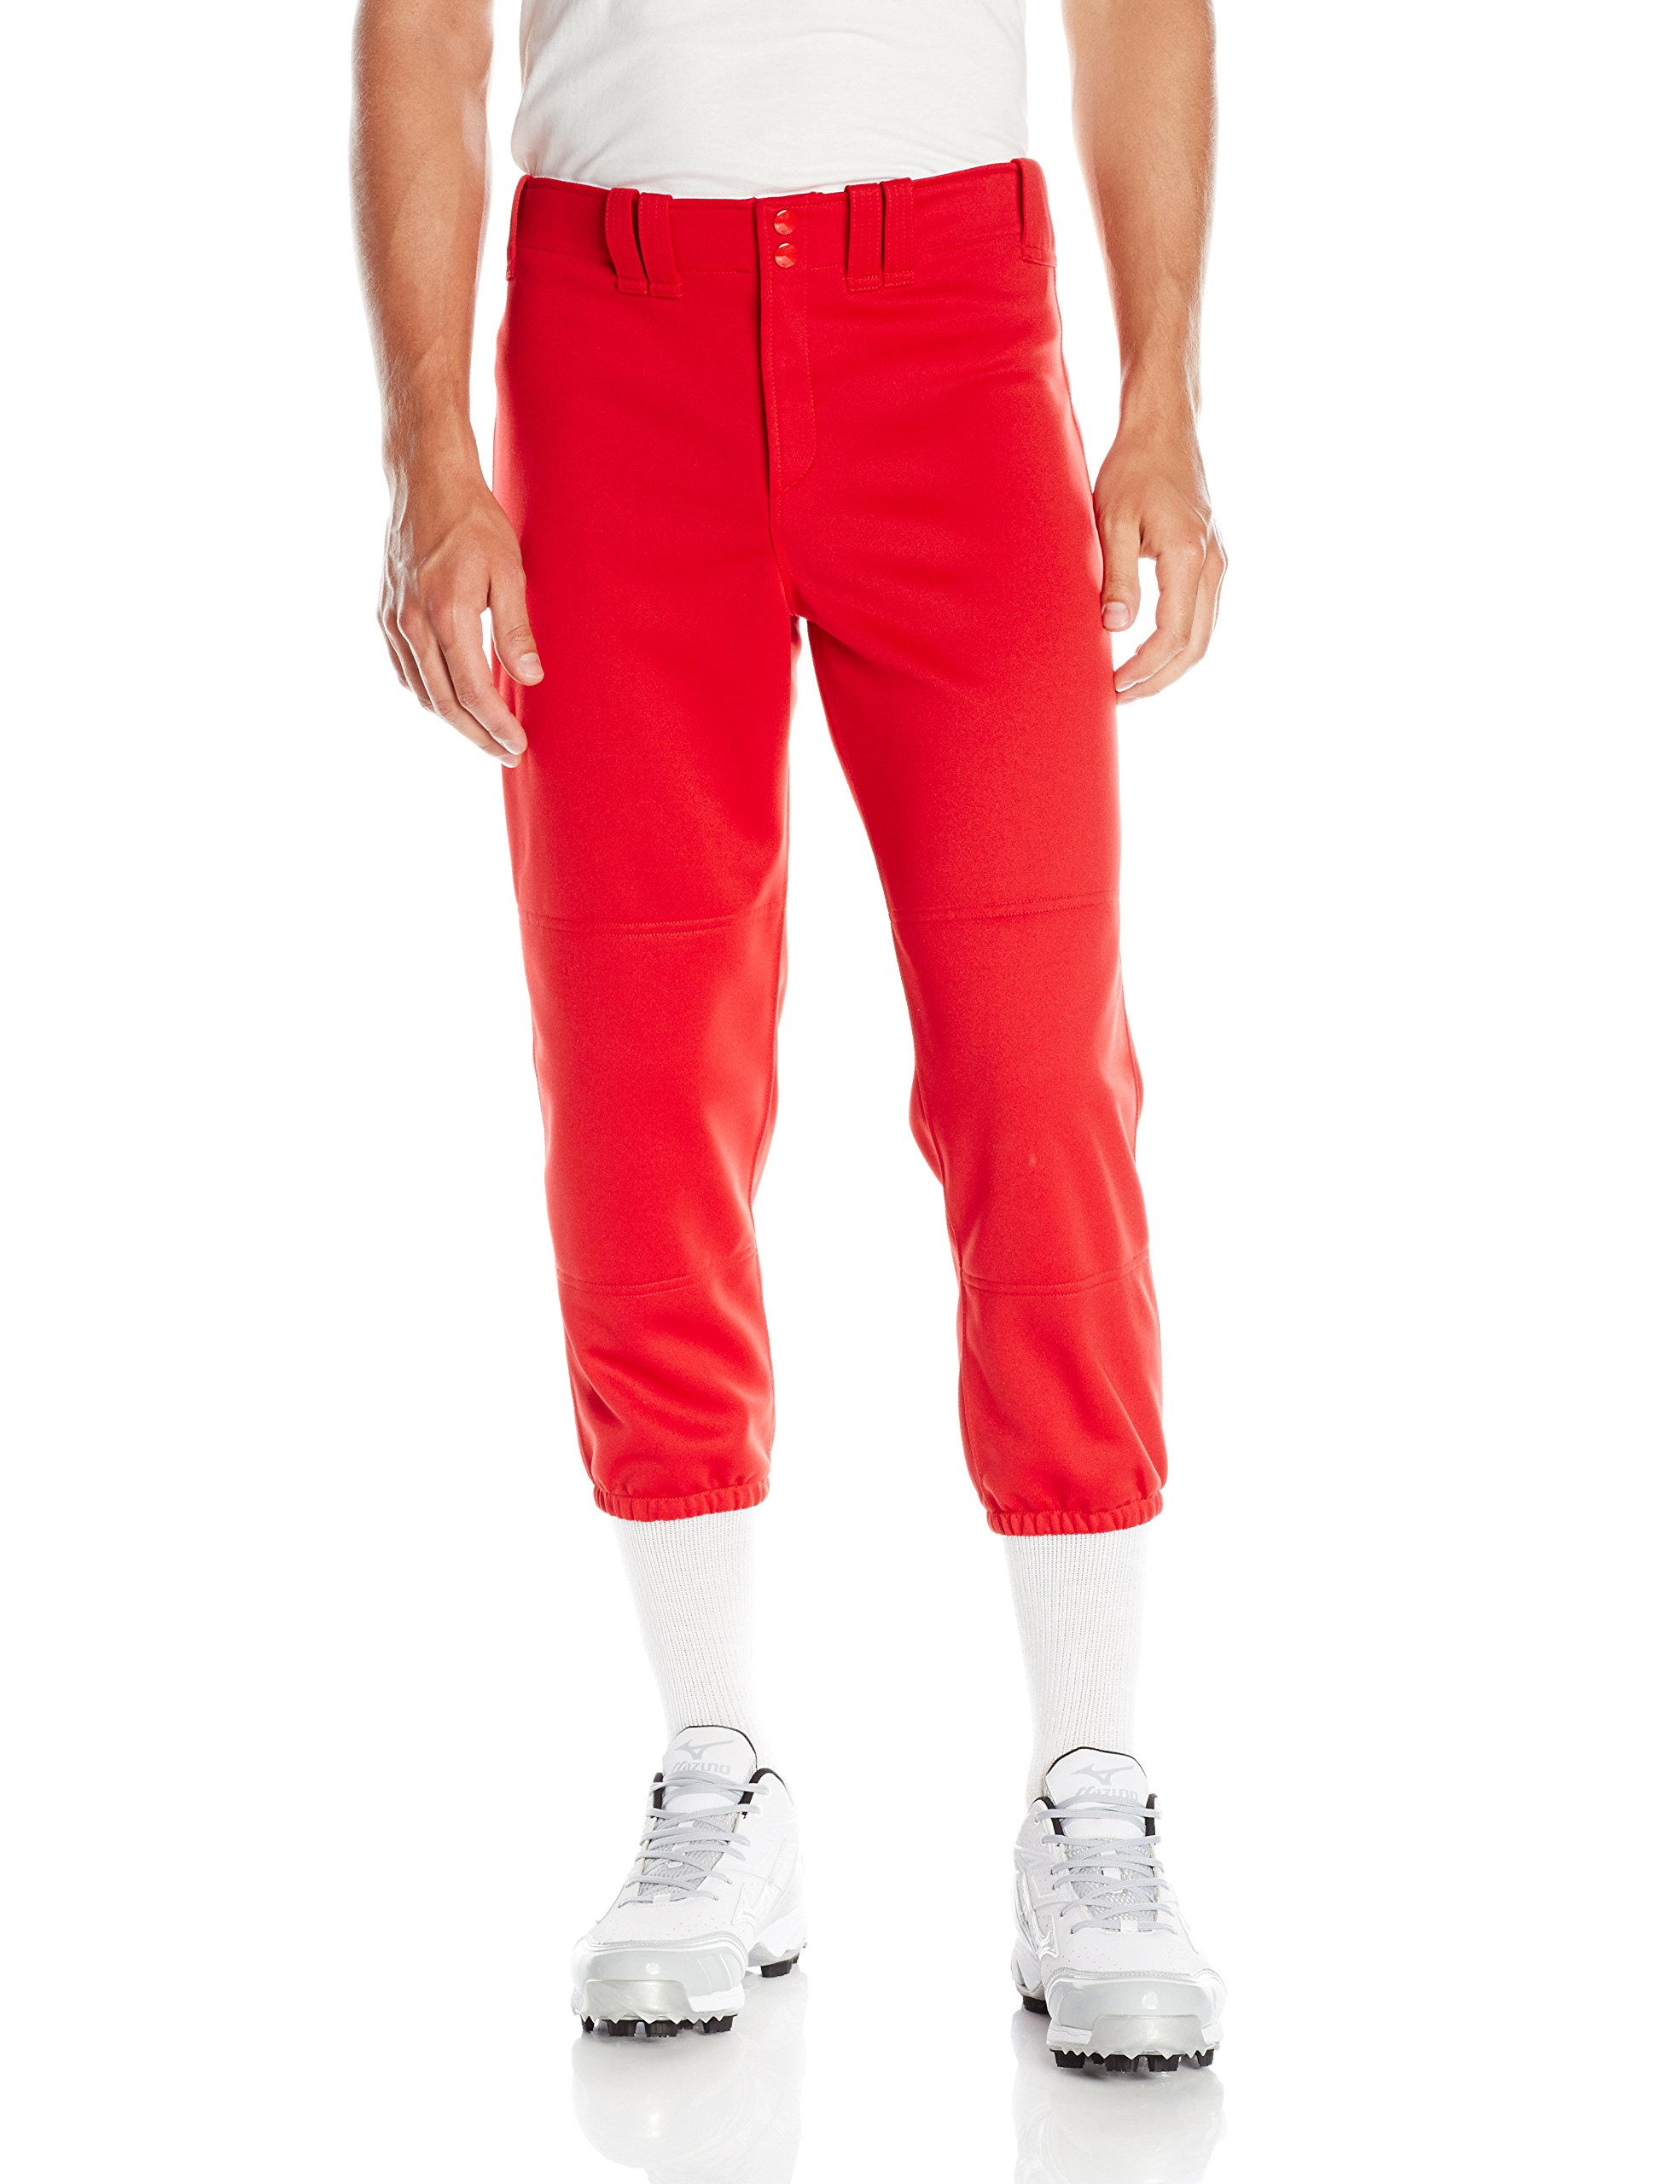 Mizuno Adult Women's Belted Low Rise Fastpitch Softball Pant, Red, Small by Mizuno (Image #2)